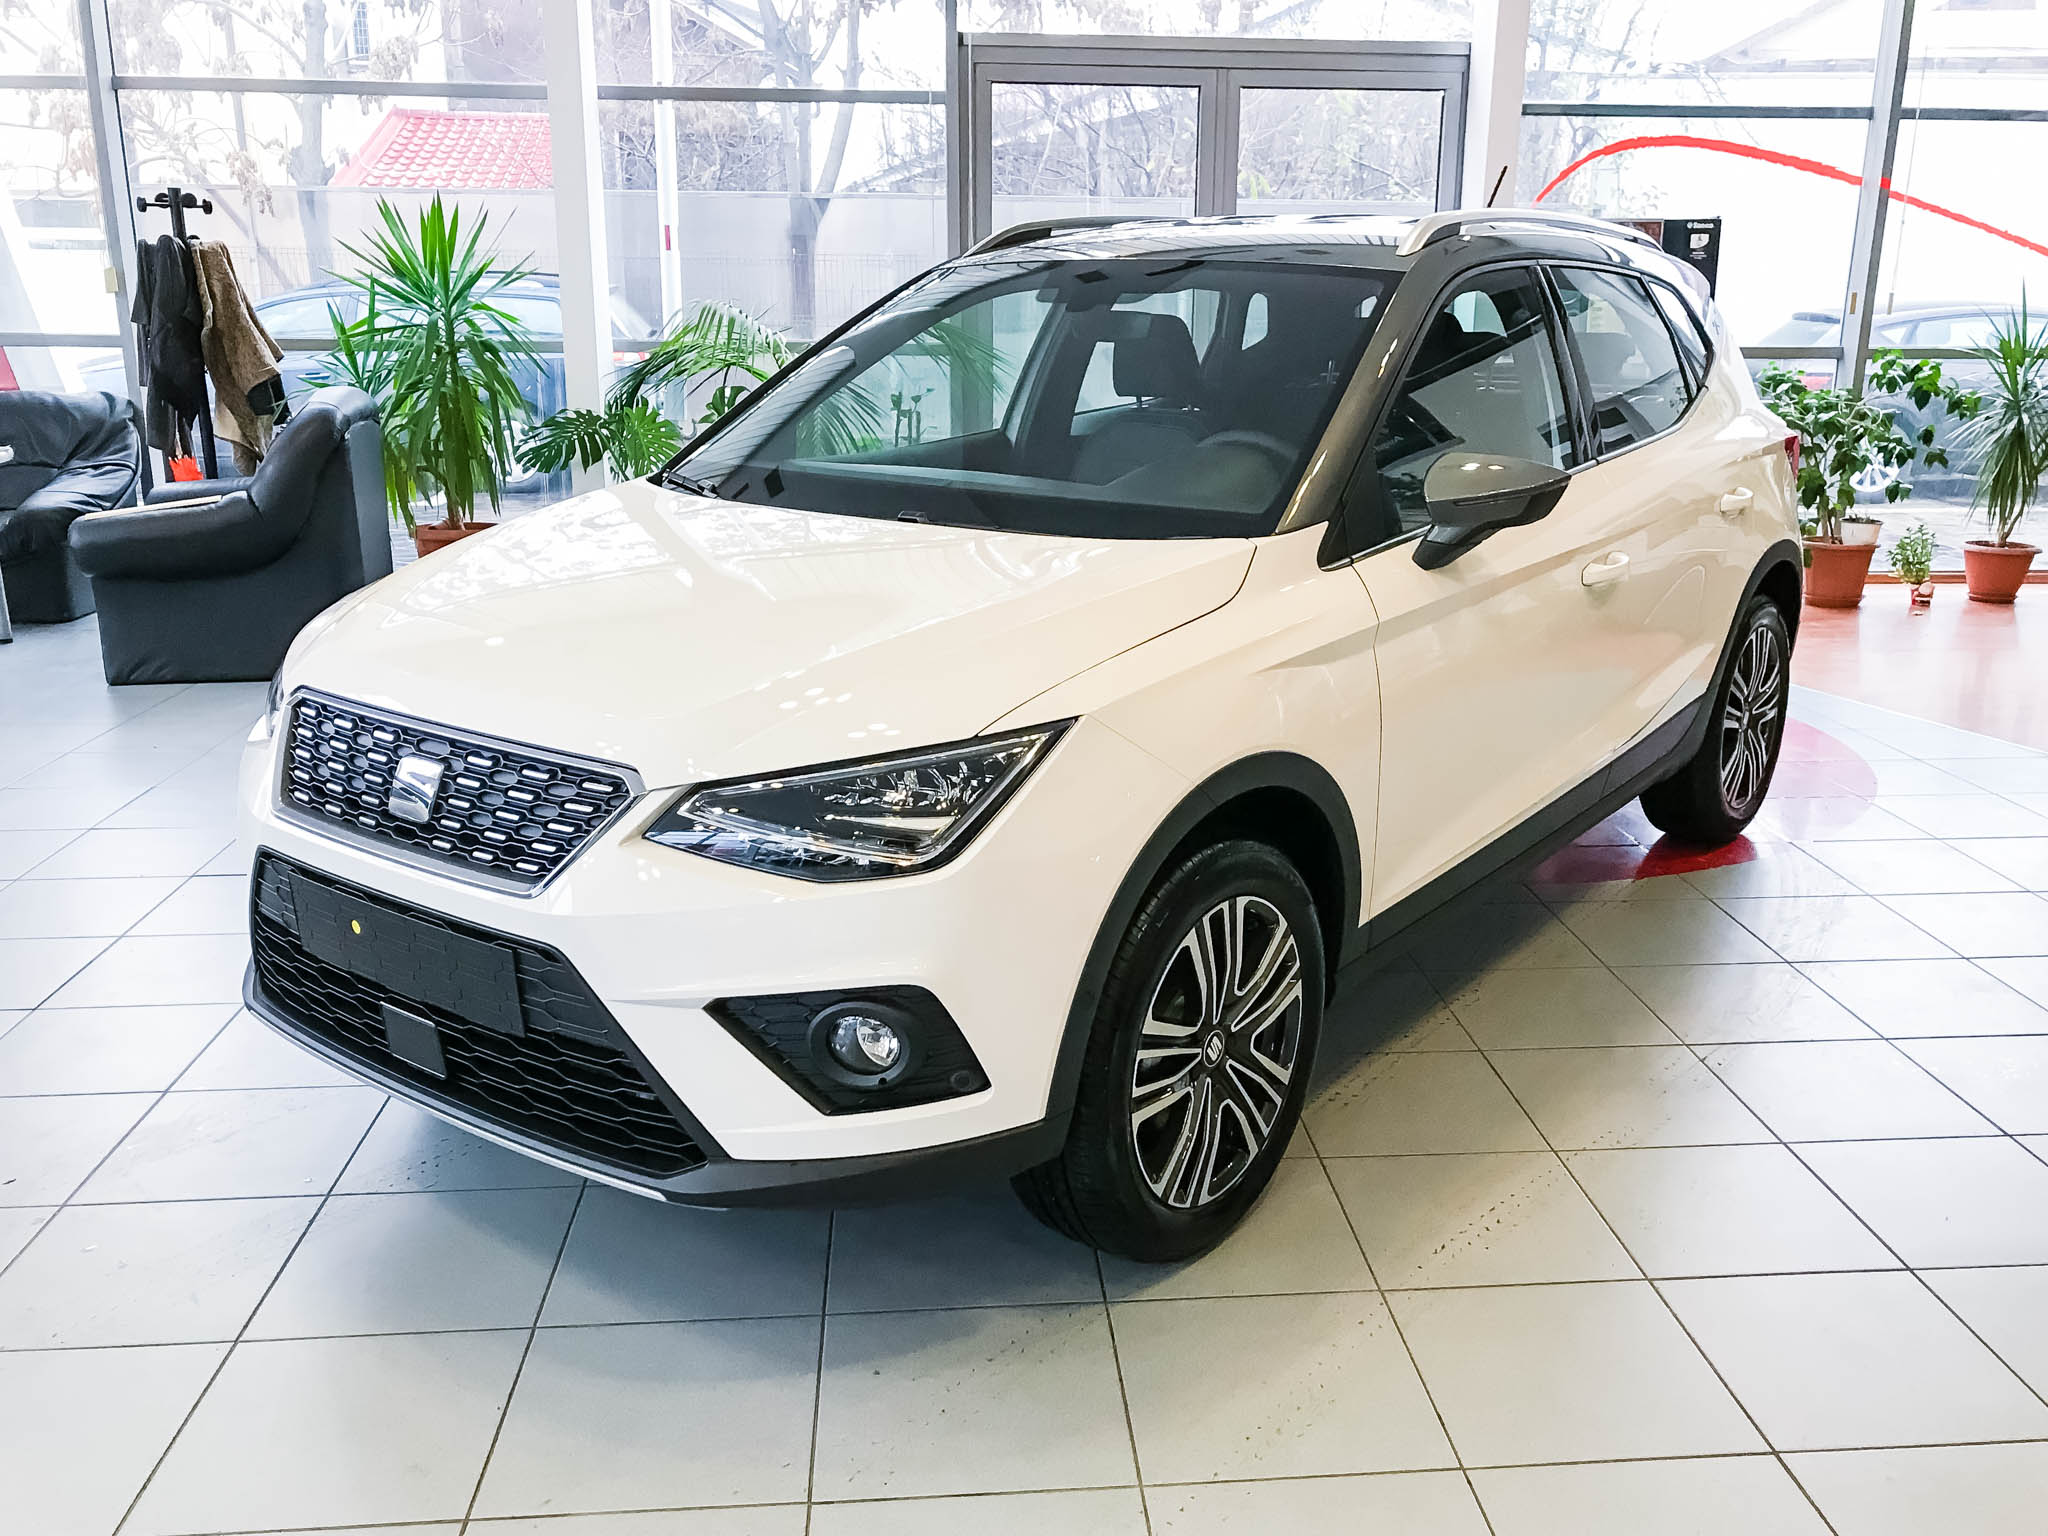 arona dating site Dating adchoices 2018 seat arona review: form and function tyler heatley  the arona suv is named after a municipality on the spanish island of tenerife.